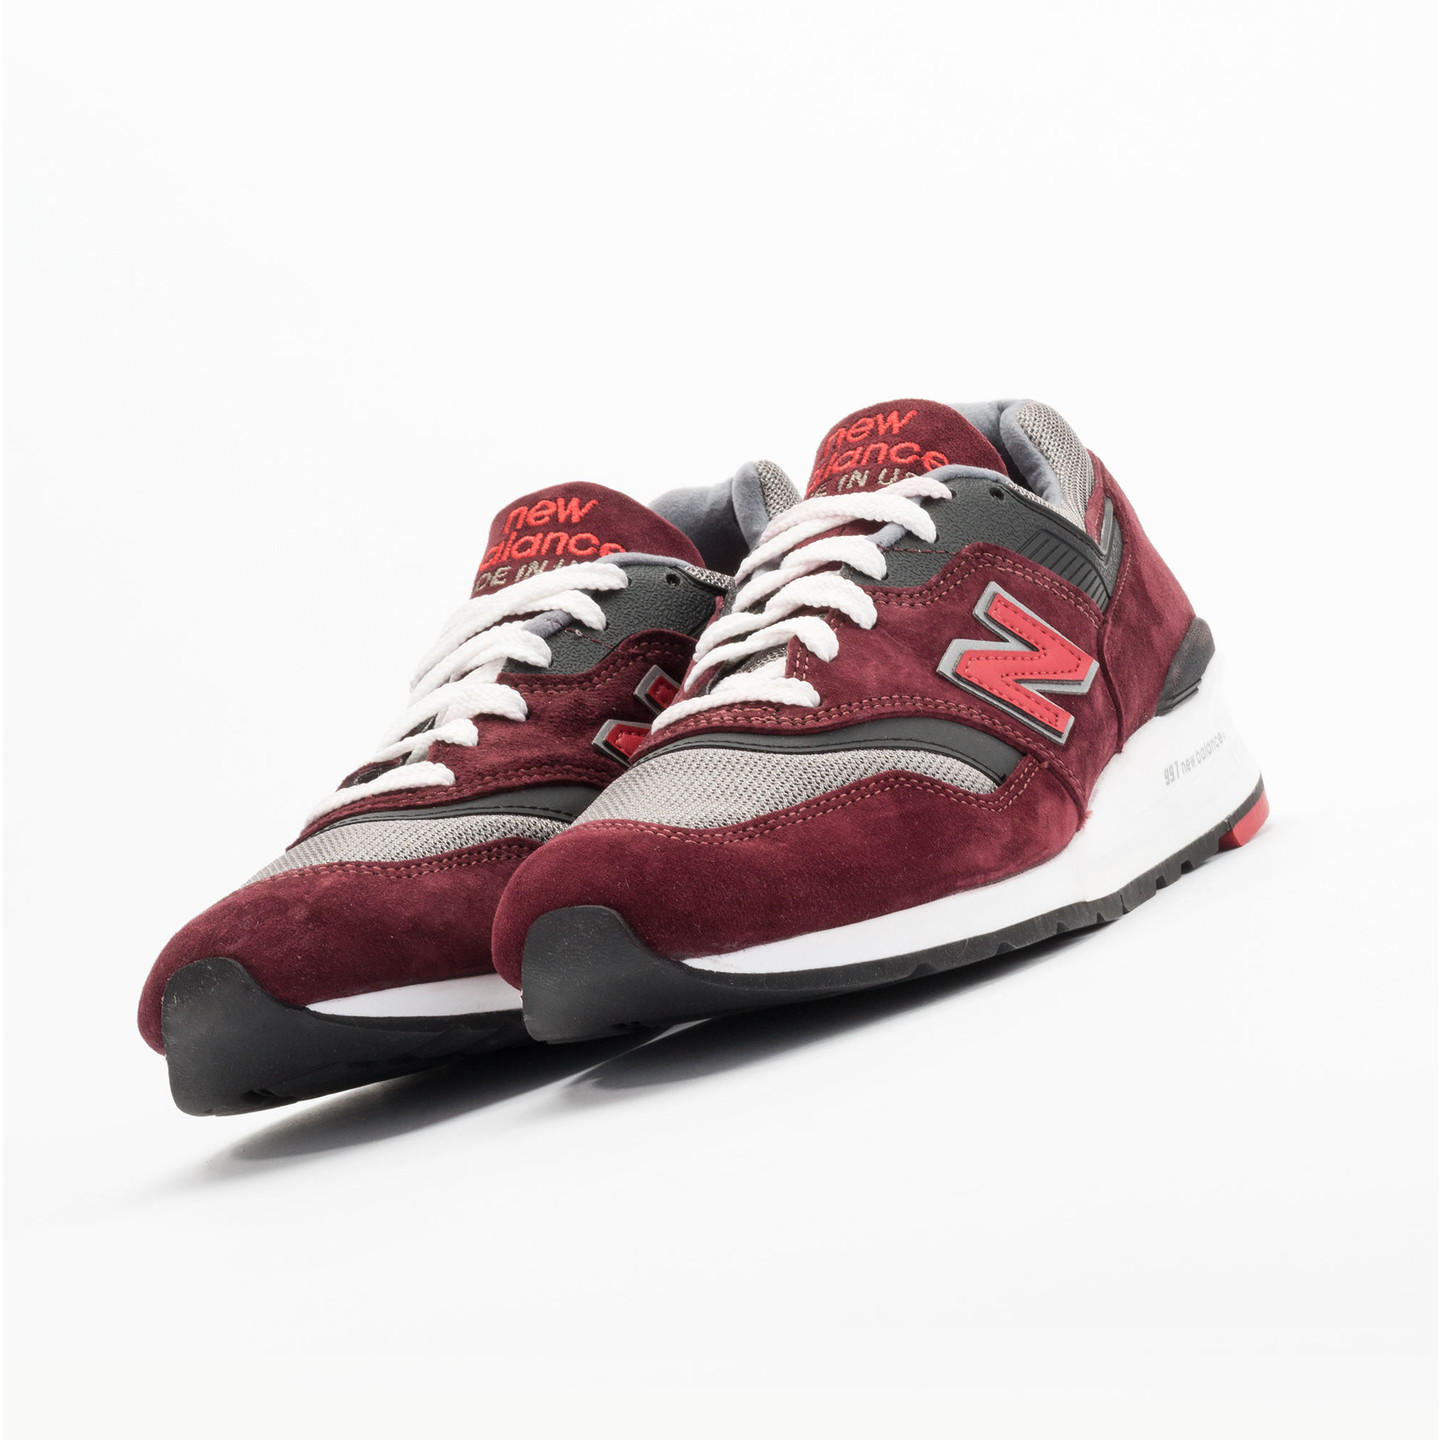 New Balance M997 CRG - Made in USA Brick Red / Black / Grey M997CRG-42.5